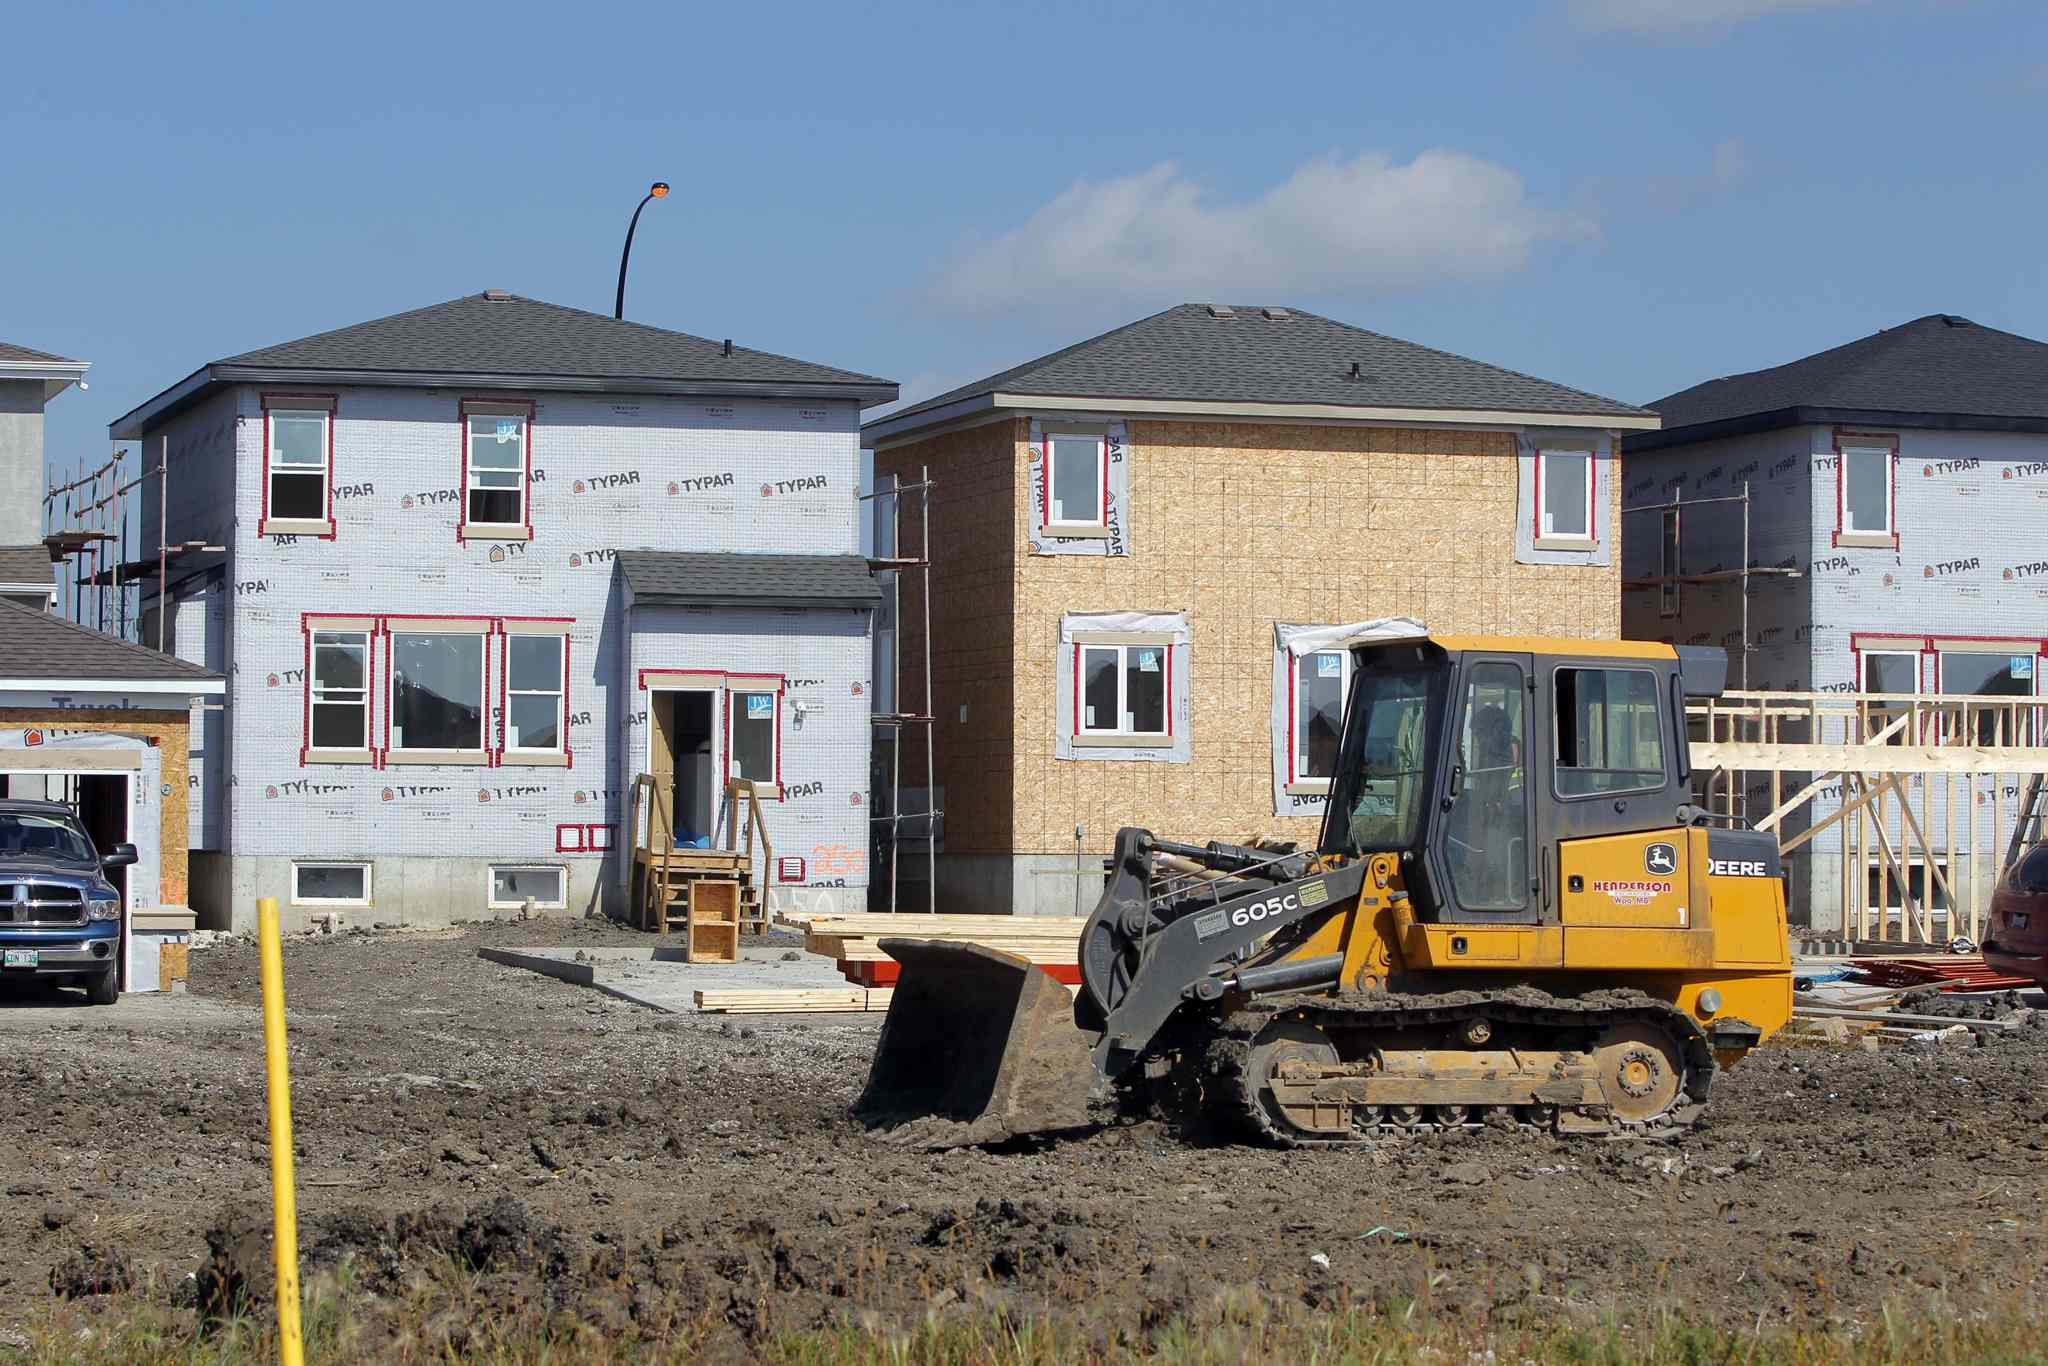 The new-homes portion of the housing market is more able to respond to slowdowns, as the projects are smaller.